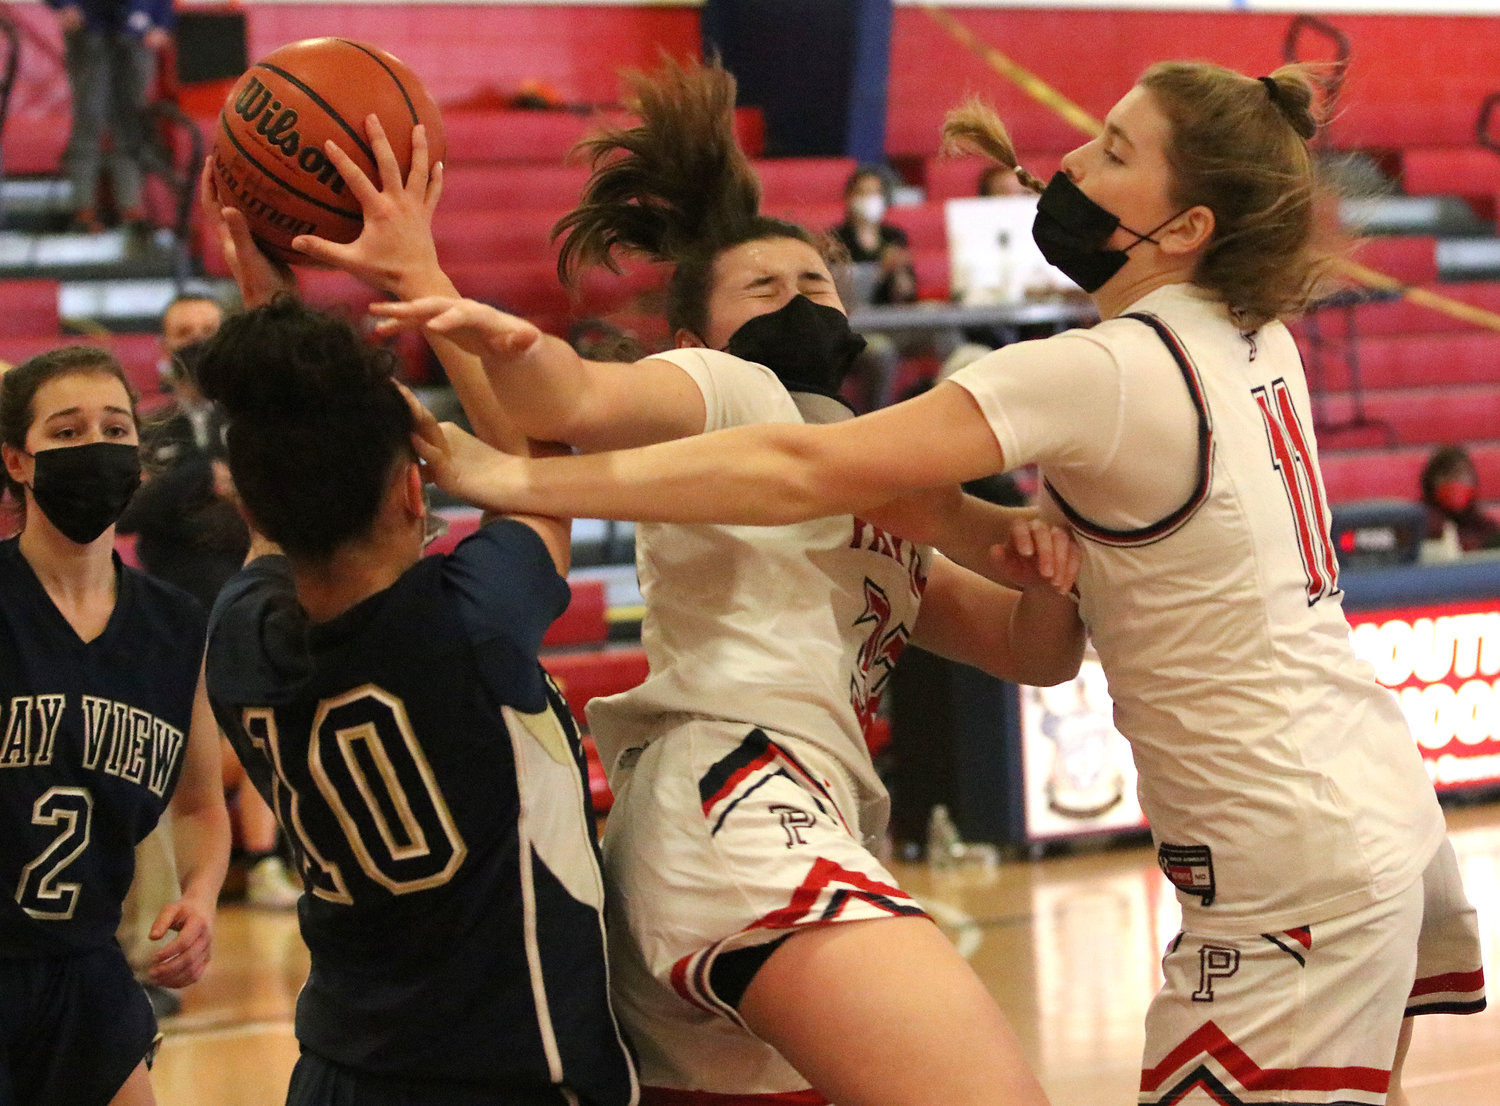 Patriots senior guard Emily Colicci (left) and Maeve Tullson vie for a rebound under the Portsmouth hoop.